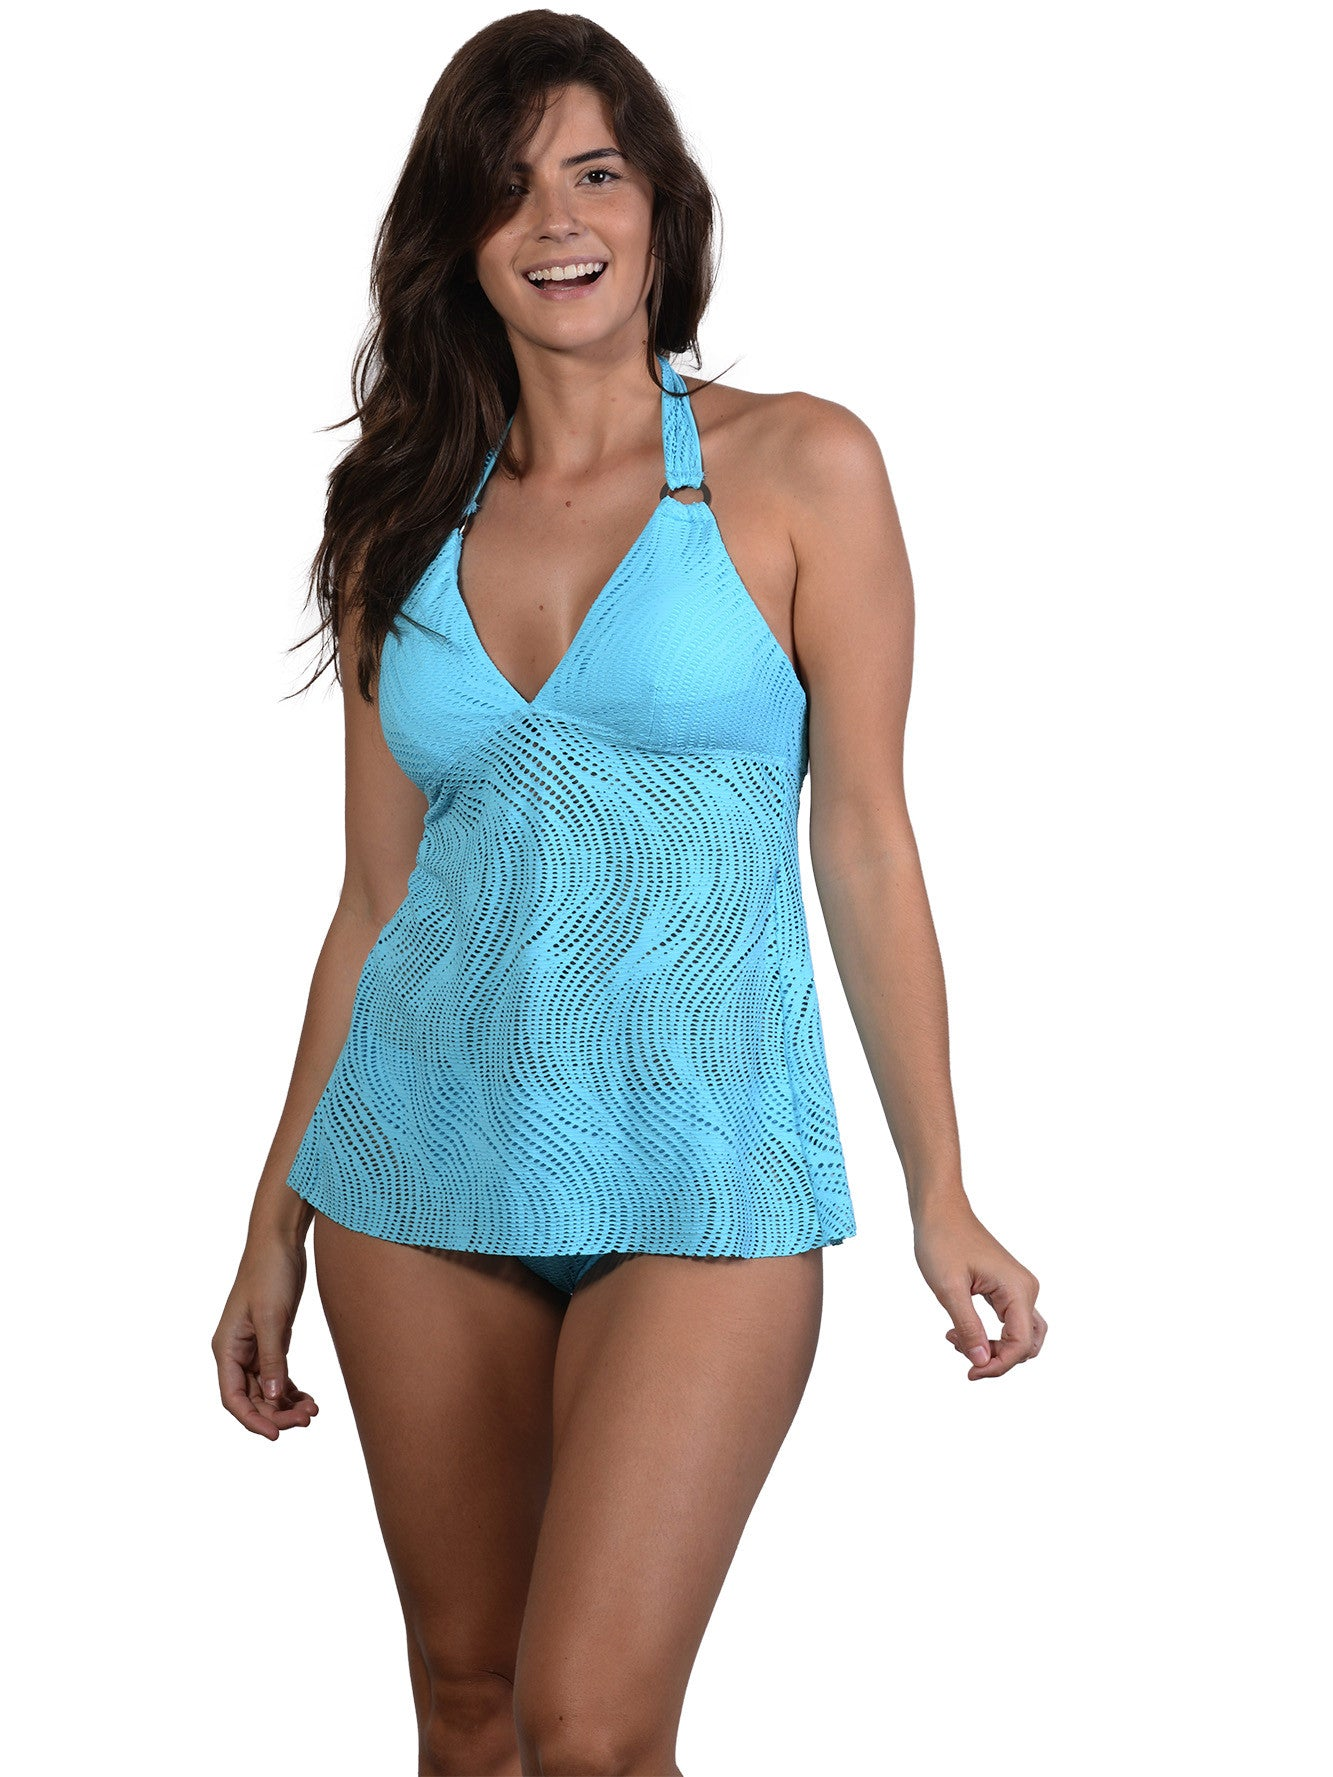 Finch Swim bikini top with tie neck/back, removable cups, silver rings.